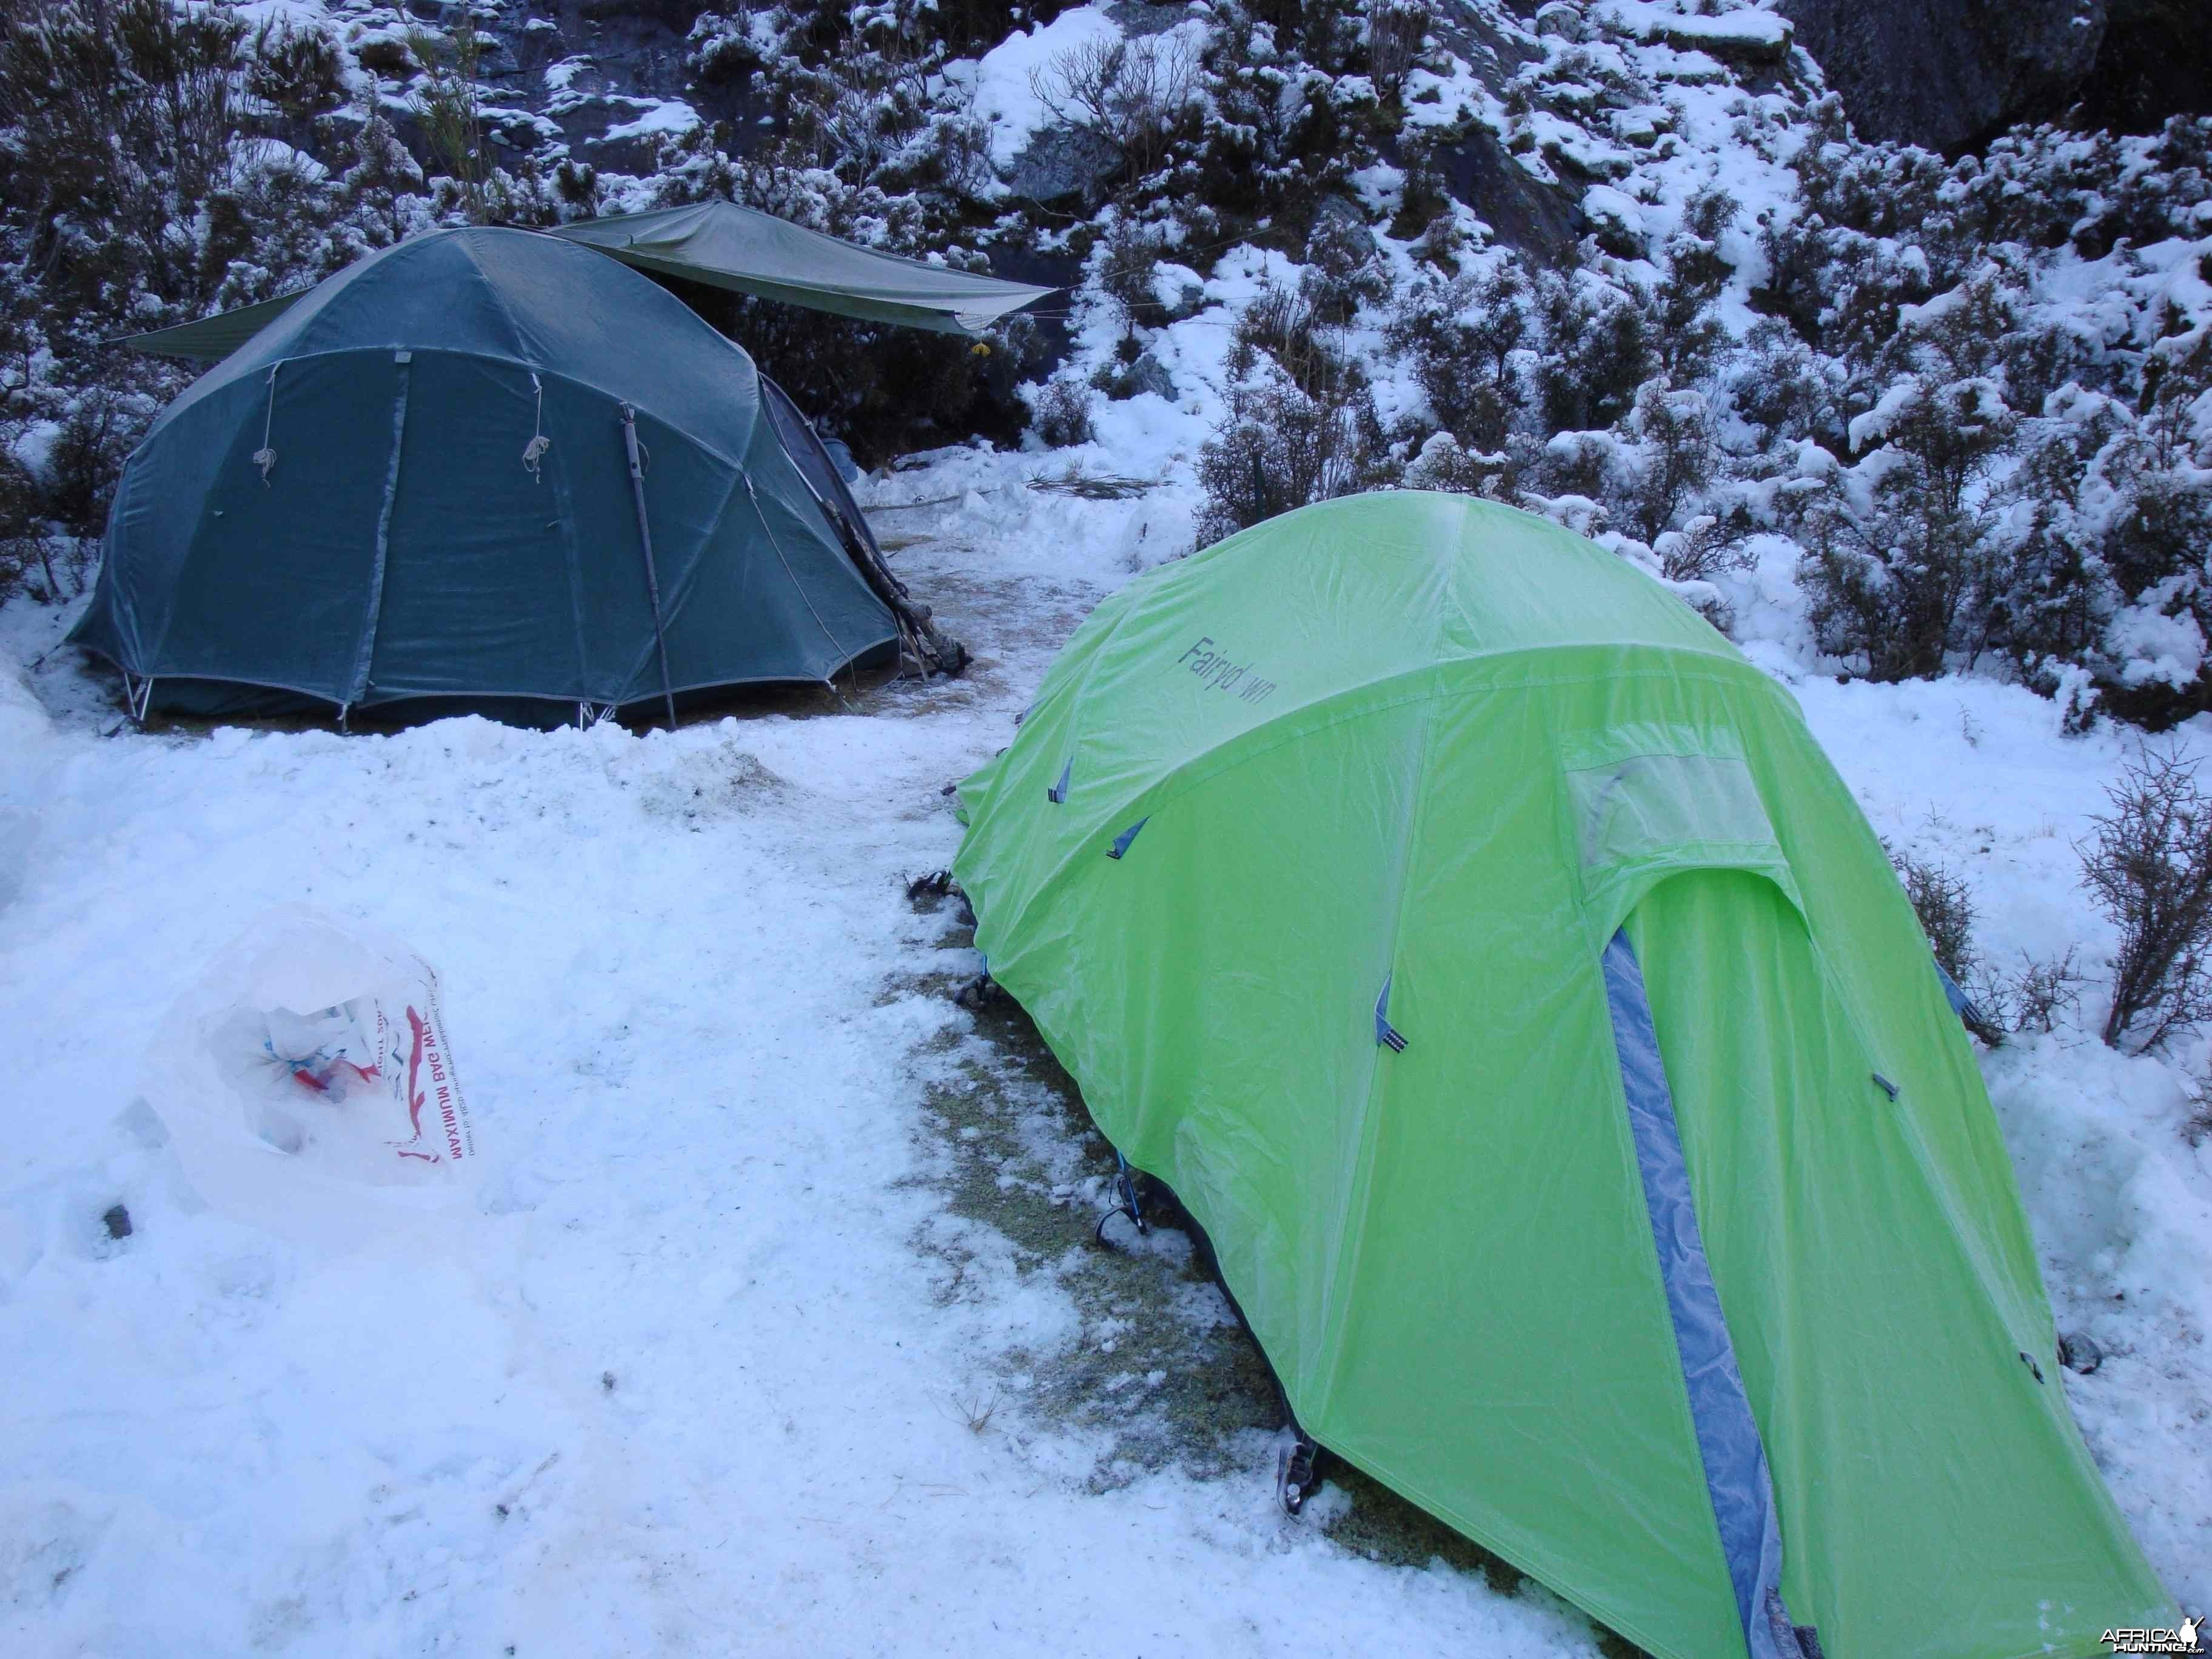 Very cold camp